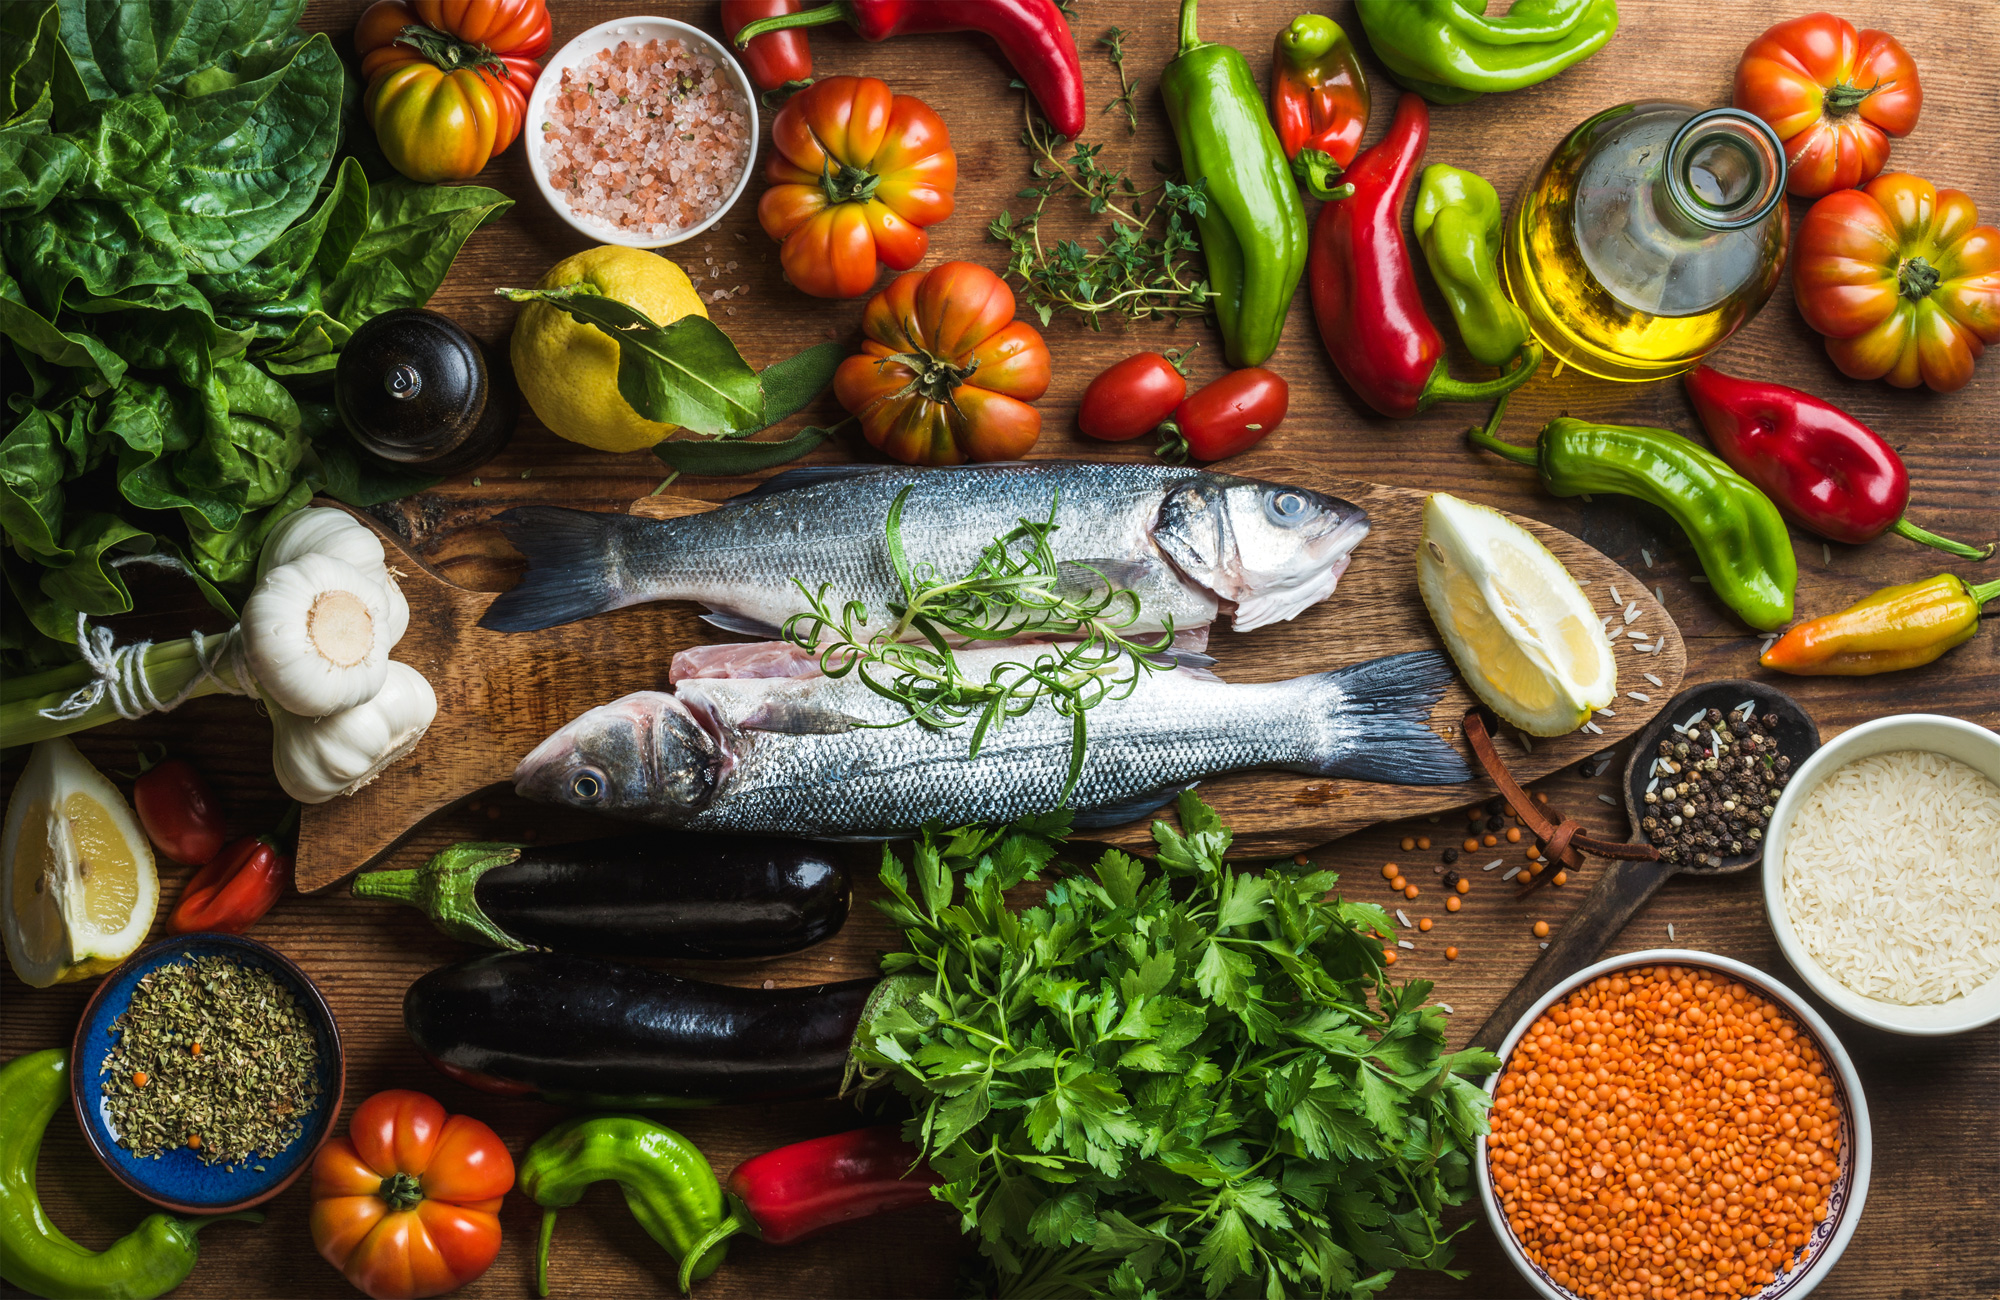 A study by the United Nations Food and Agriculture Organization confirms that poor-quality diet poses a greater threat to public health across the world than malaria, tuberculosis or measles